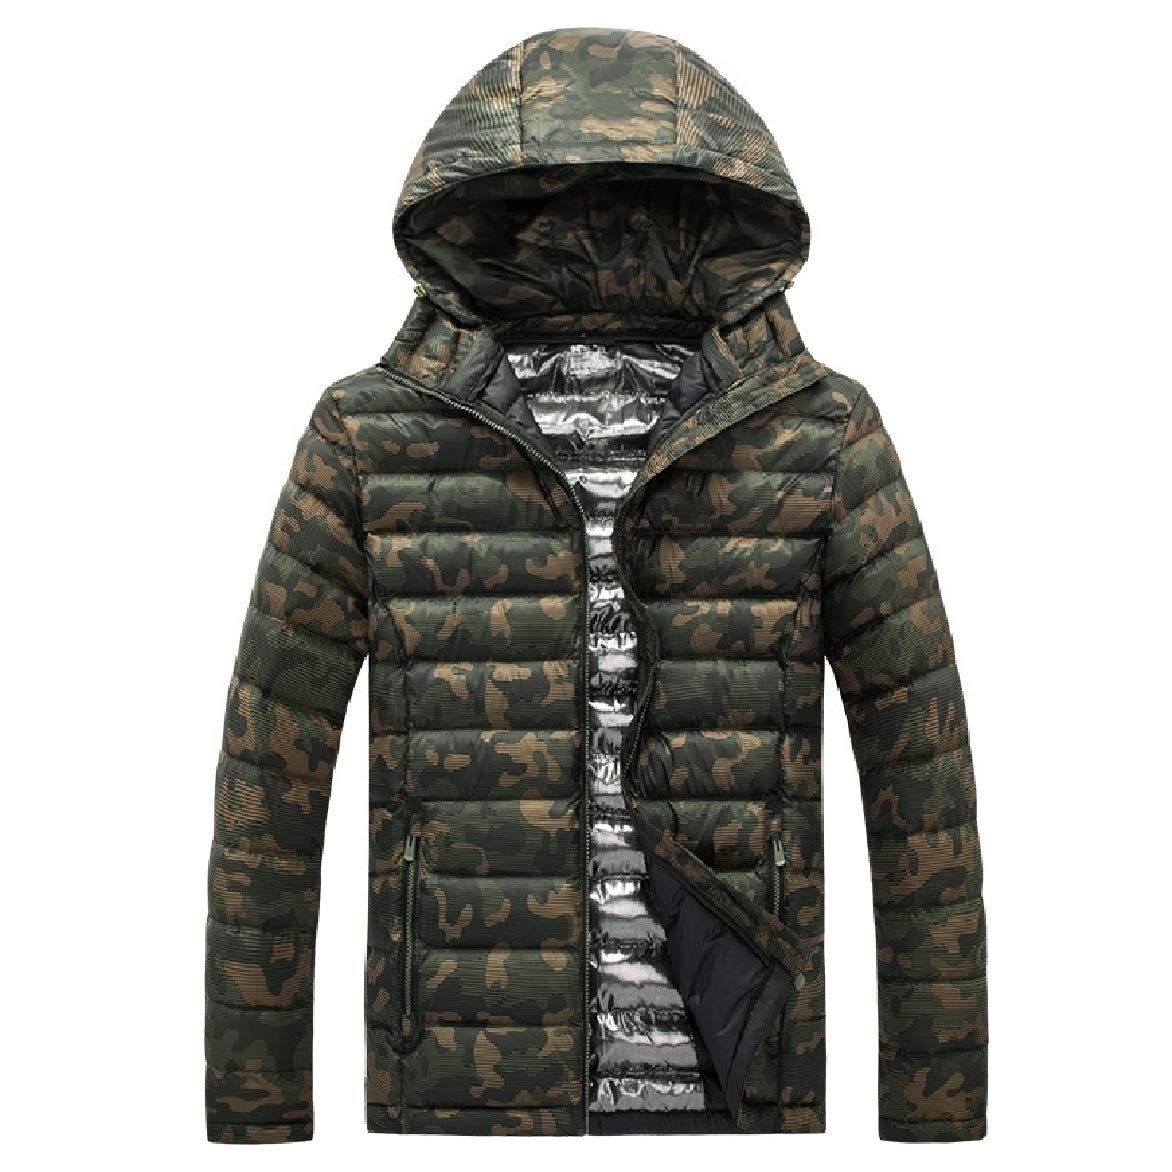 Abetteric Mens Comfort Hooded Thicken Camo Cotton Down Coat